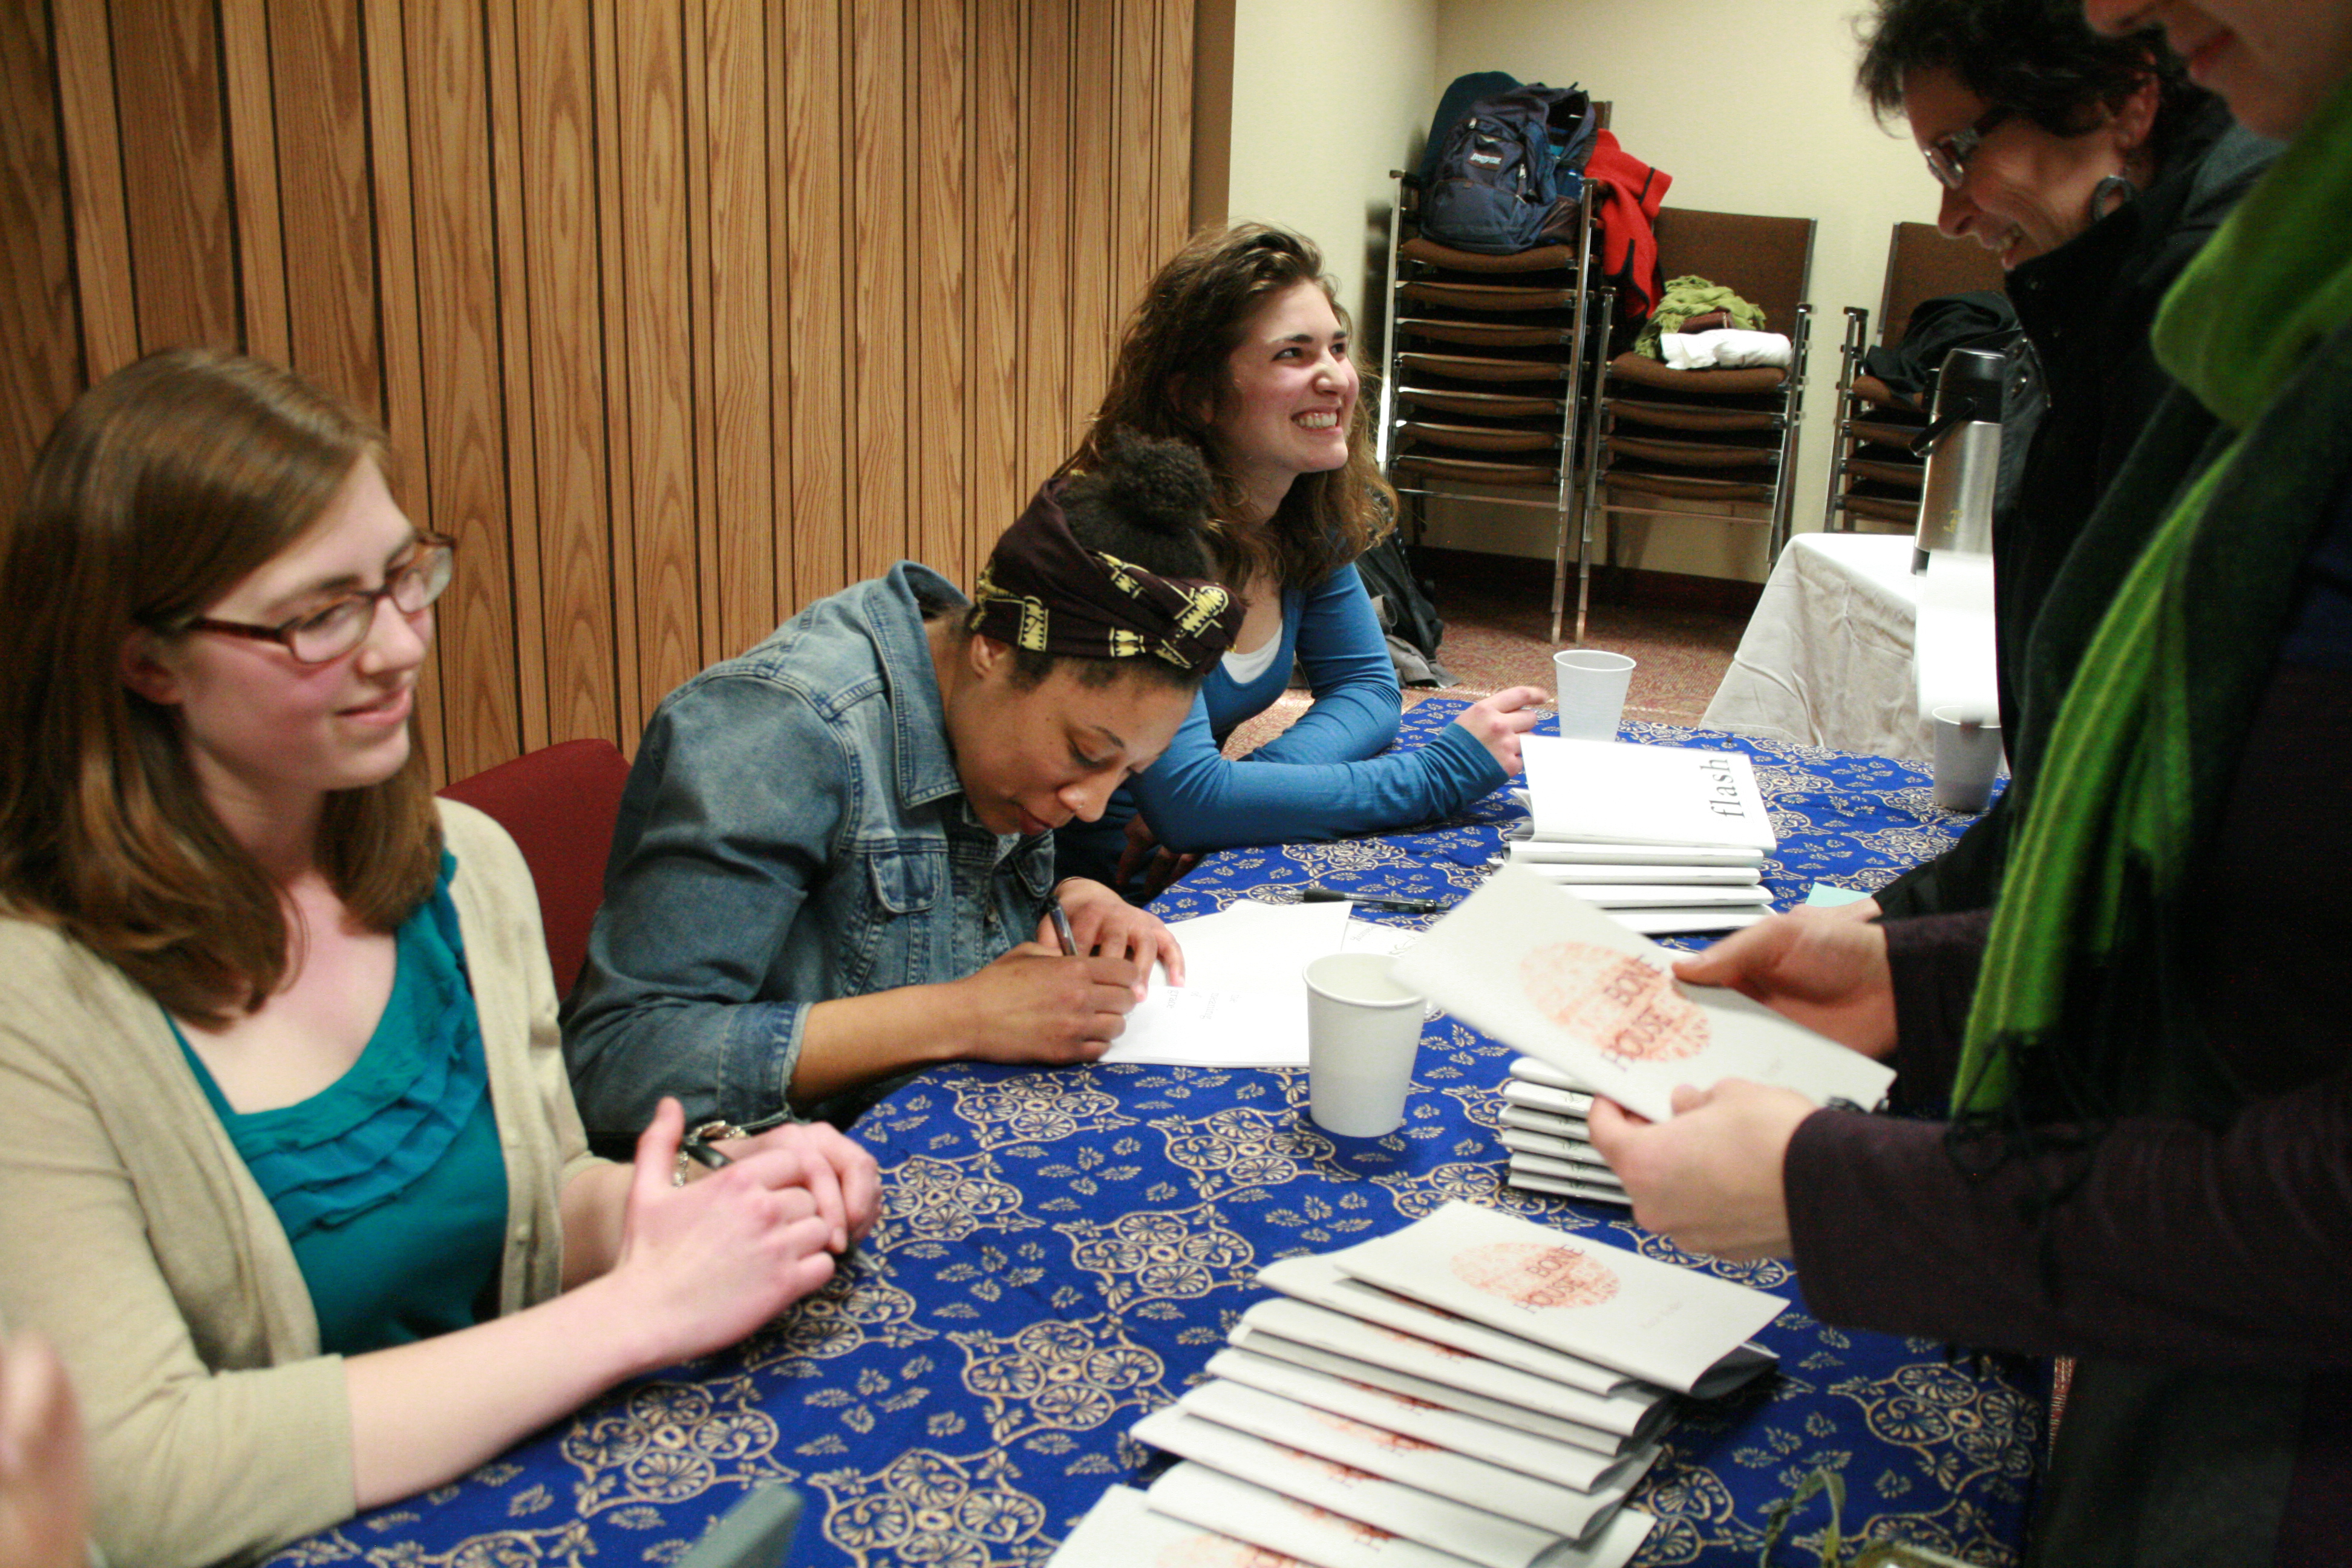 Student authors Kate Yoder, Dominique Chew and Elizabeth Derstine sign their books for other students at the Pinchpenny release party